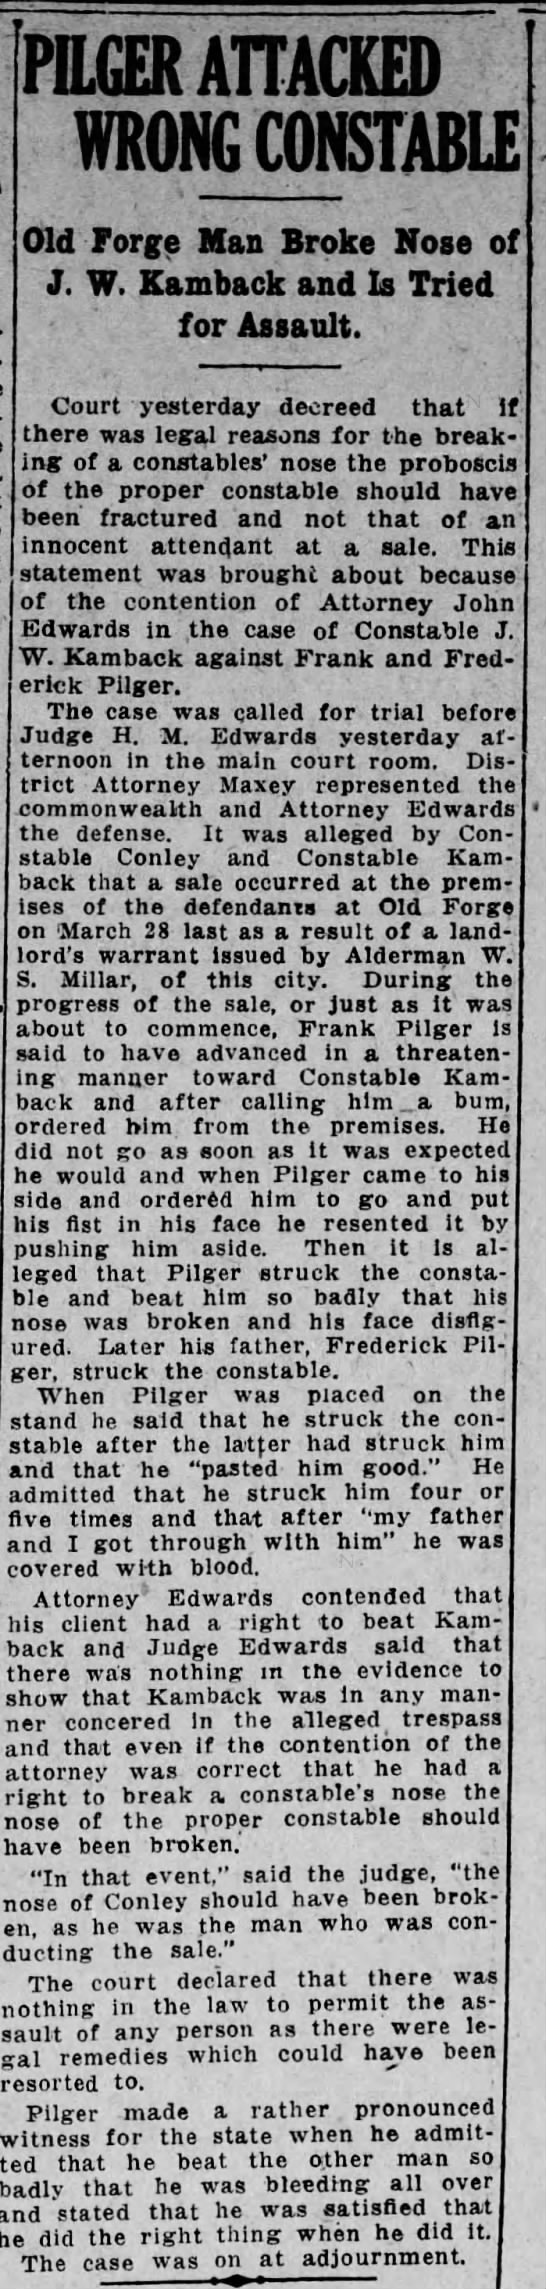 Pilger Attacked Wrong Constable (May 1914) - PILGER ATTACKED WRONG CONSTABLE Old Forge Man...